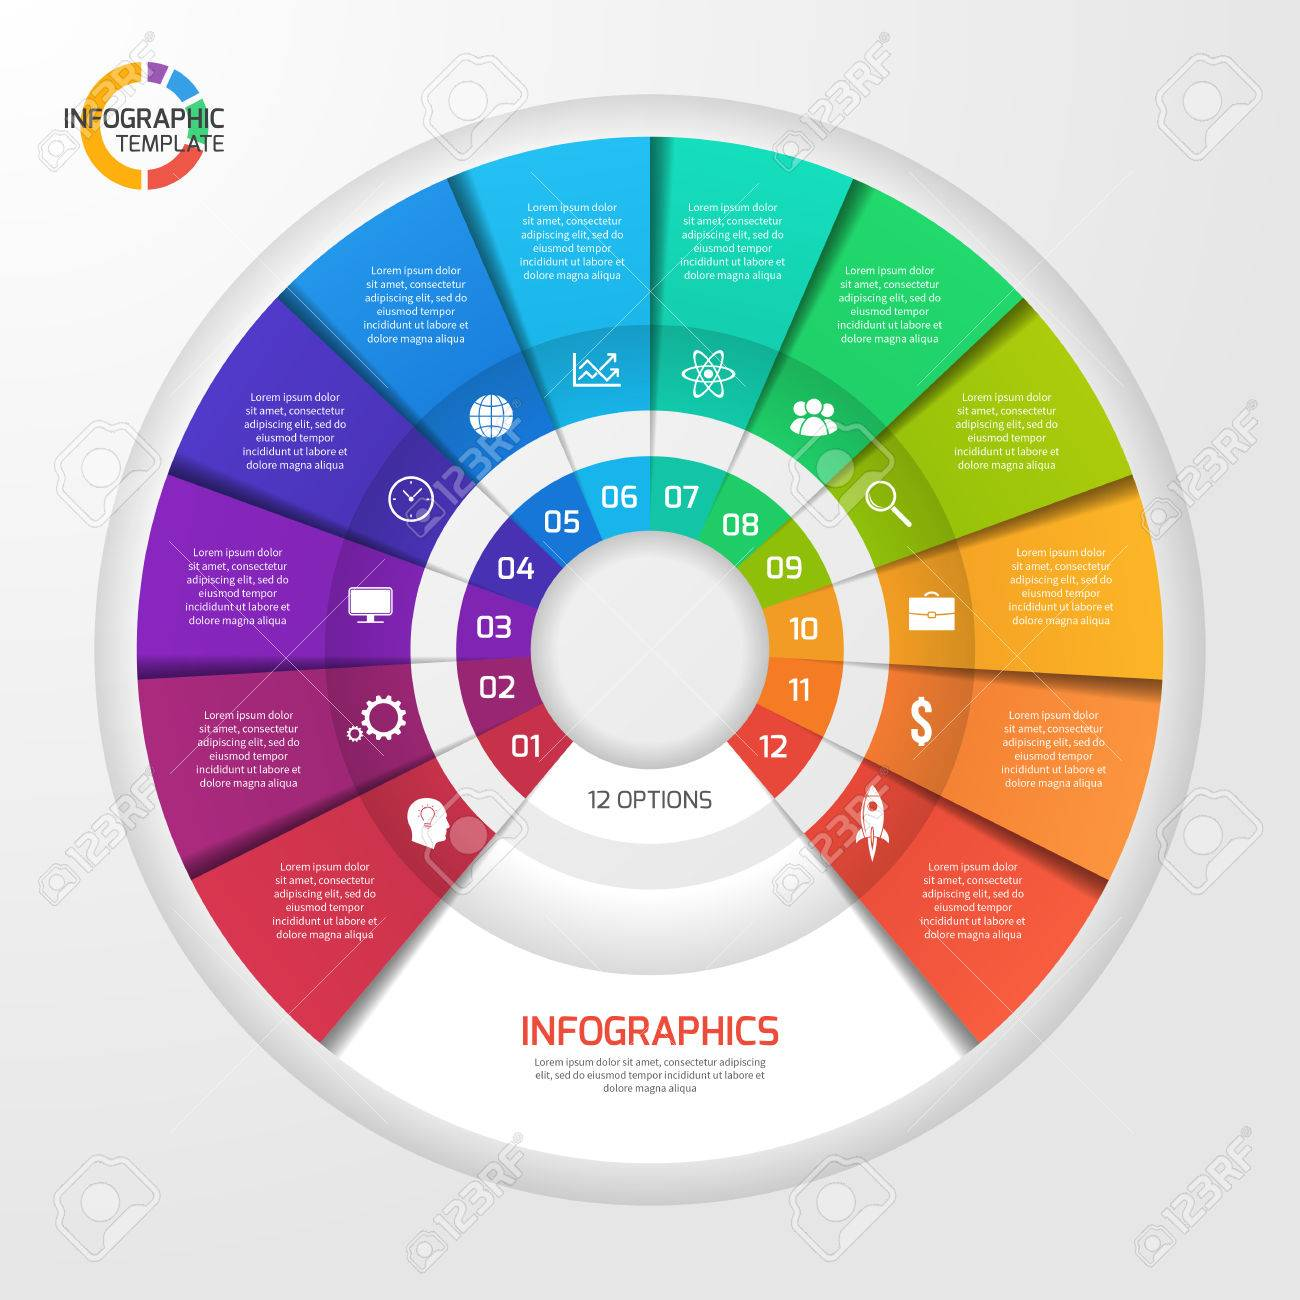 Vector Circle Infographic Template For Graphs Charts Diagrams Pie Chart Diagram Concept With 12